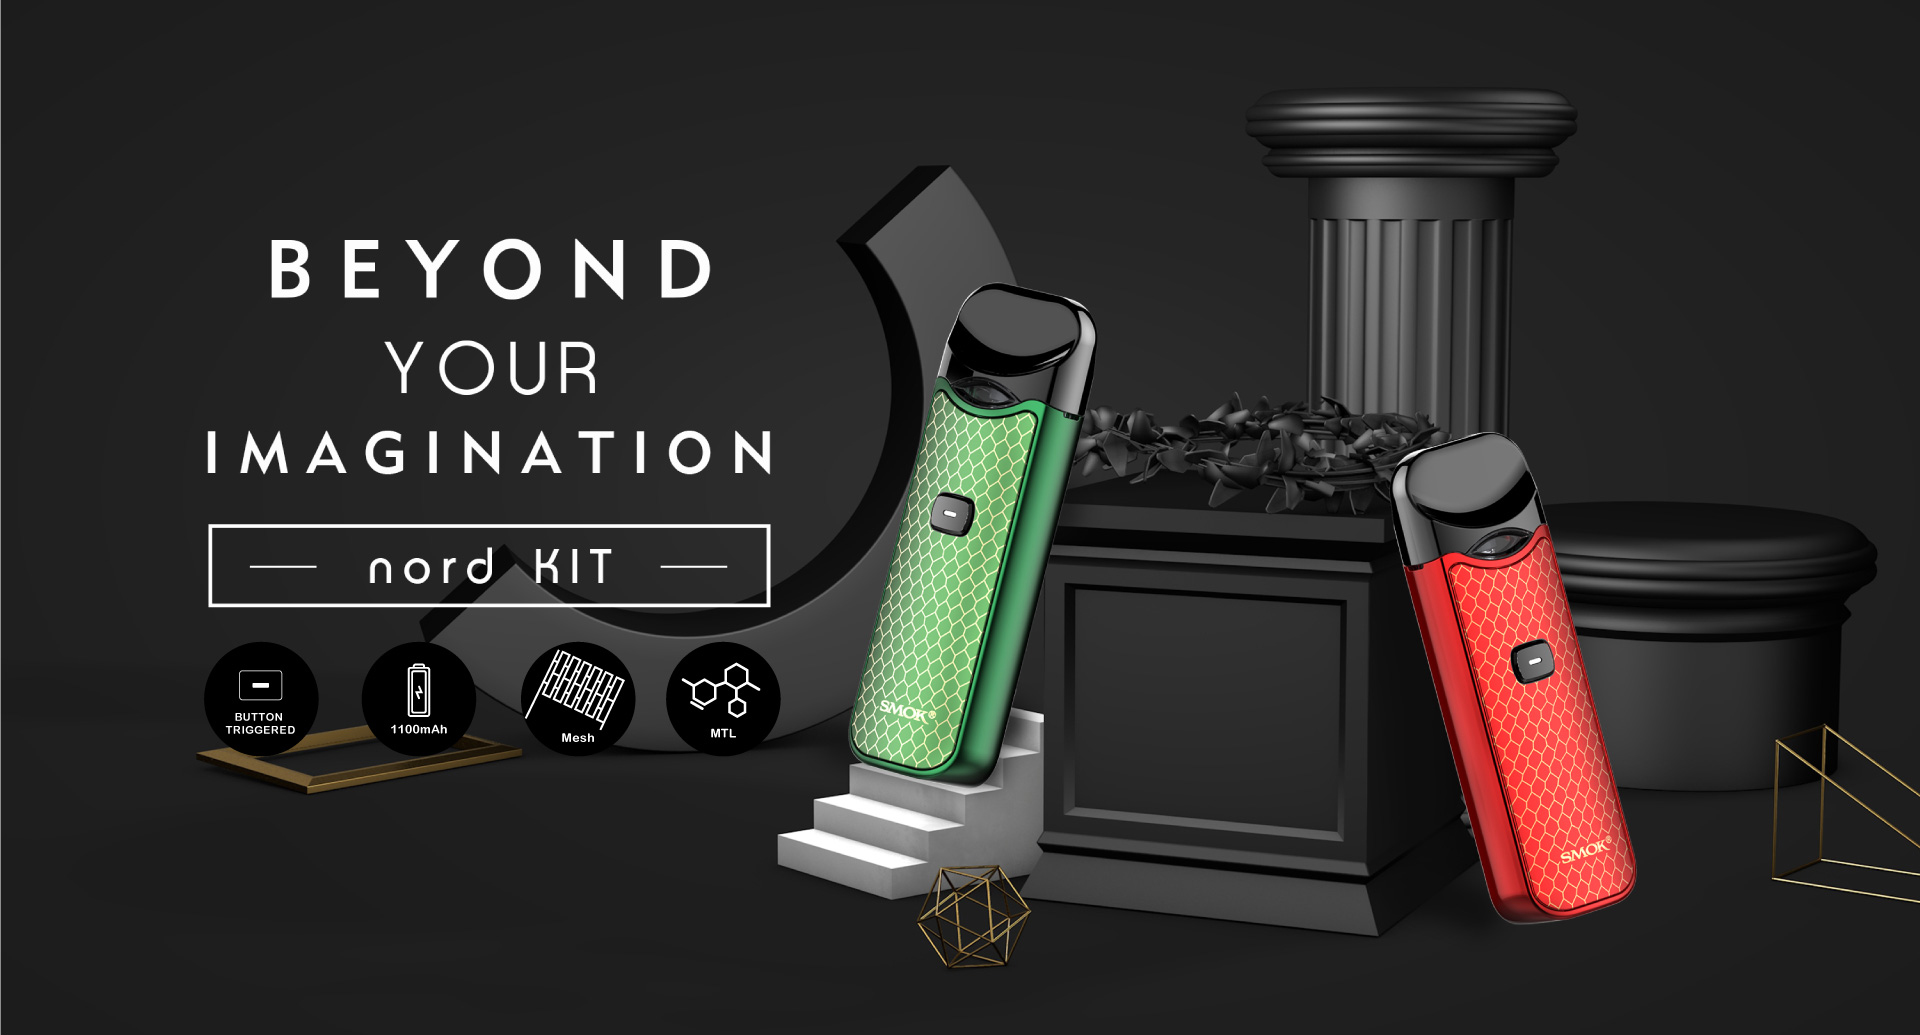 Nord Kit Smok 174 Innovation Keeps Changing The Vaping